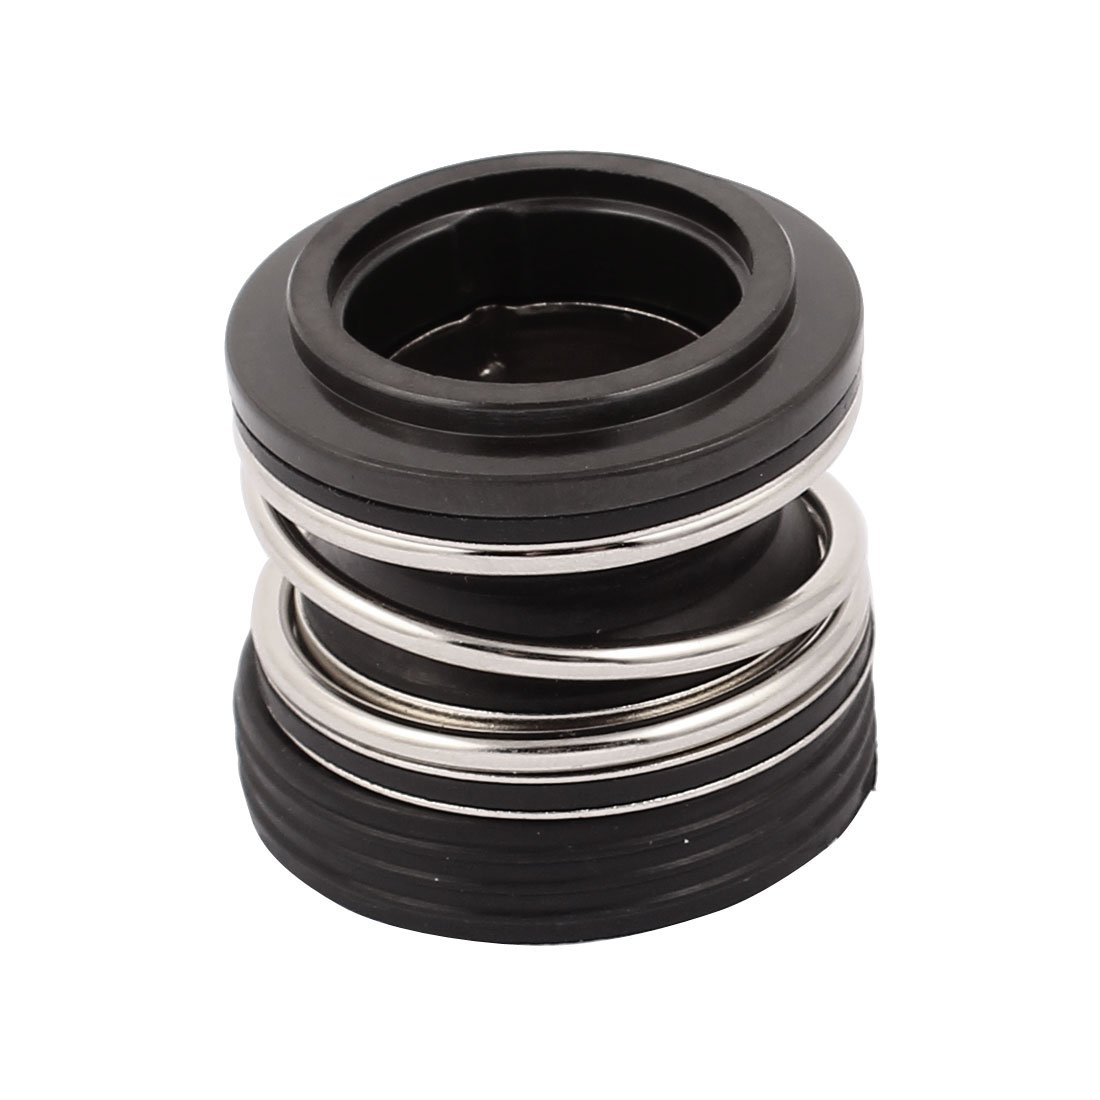 uxcell 18mm Inner Dia Single Spring Rubber Bellow Water Pump Industrial Mechanical Seal